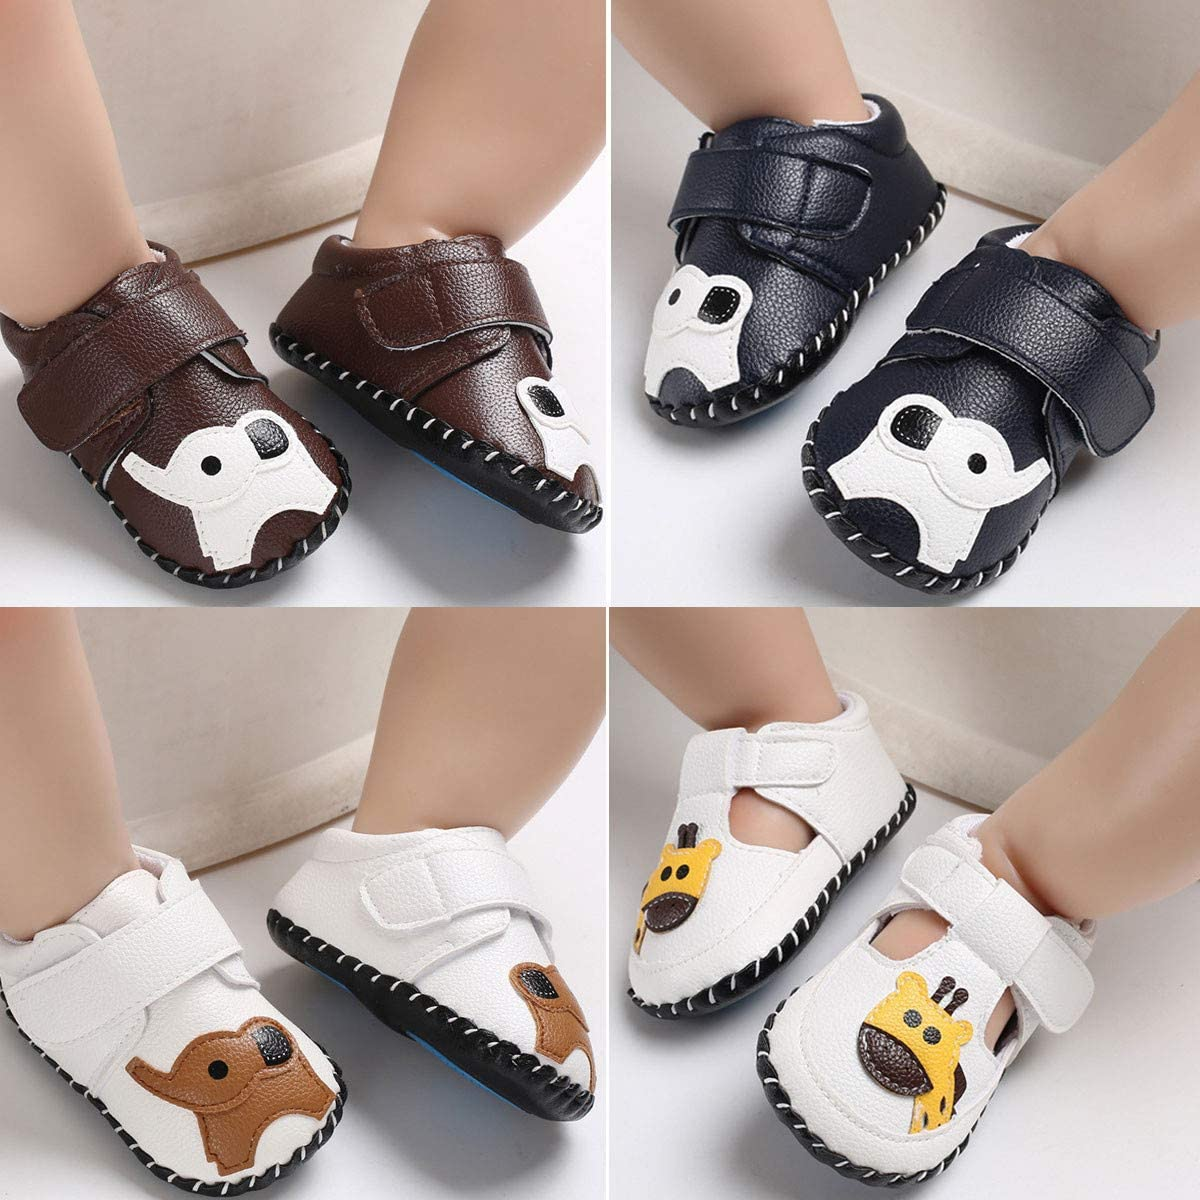 3-18 Months TIMATEGO Infant Baby Boys Girls Sneaker PU Leather Hard Bottom Non Slip Walking Shoes Cartoon Slippers Toddler First Walker Crib Shoes